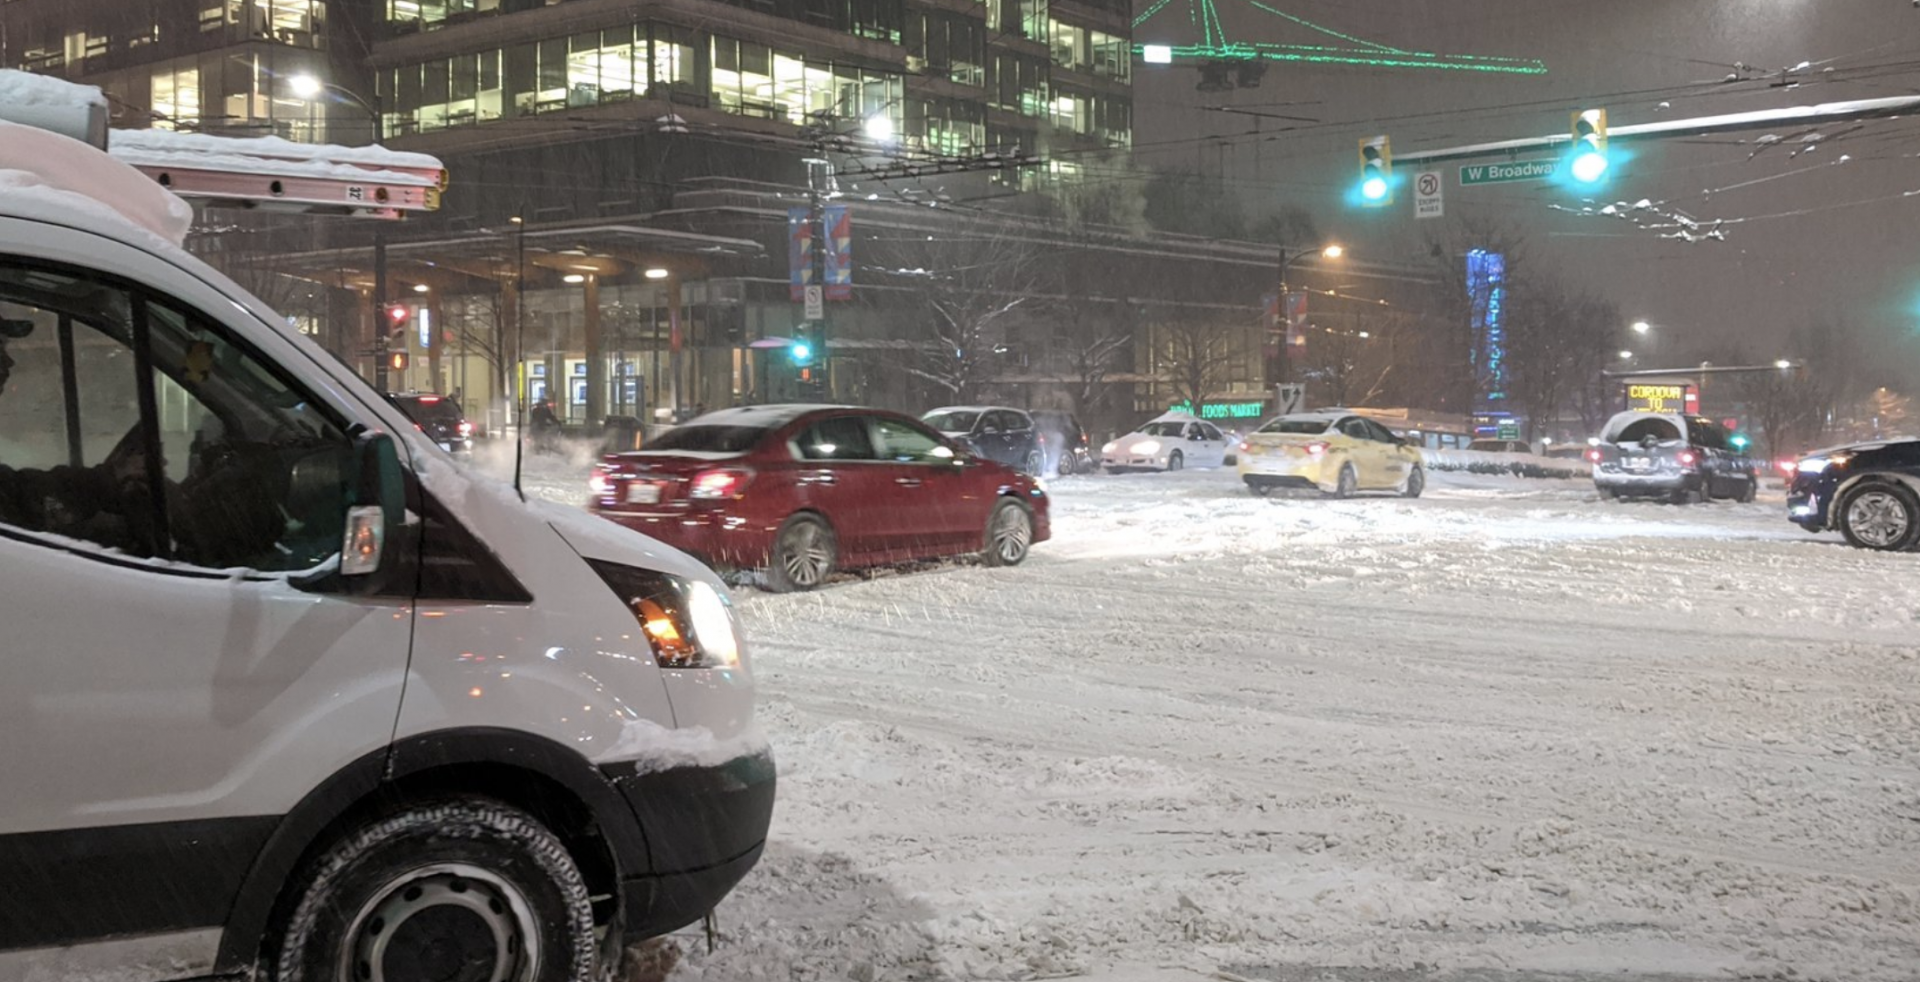 Government warns British Columbians to stay off roads today